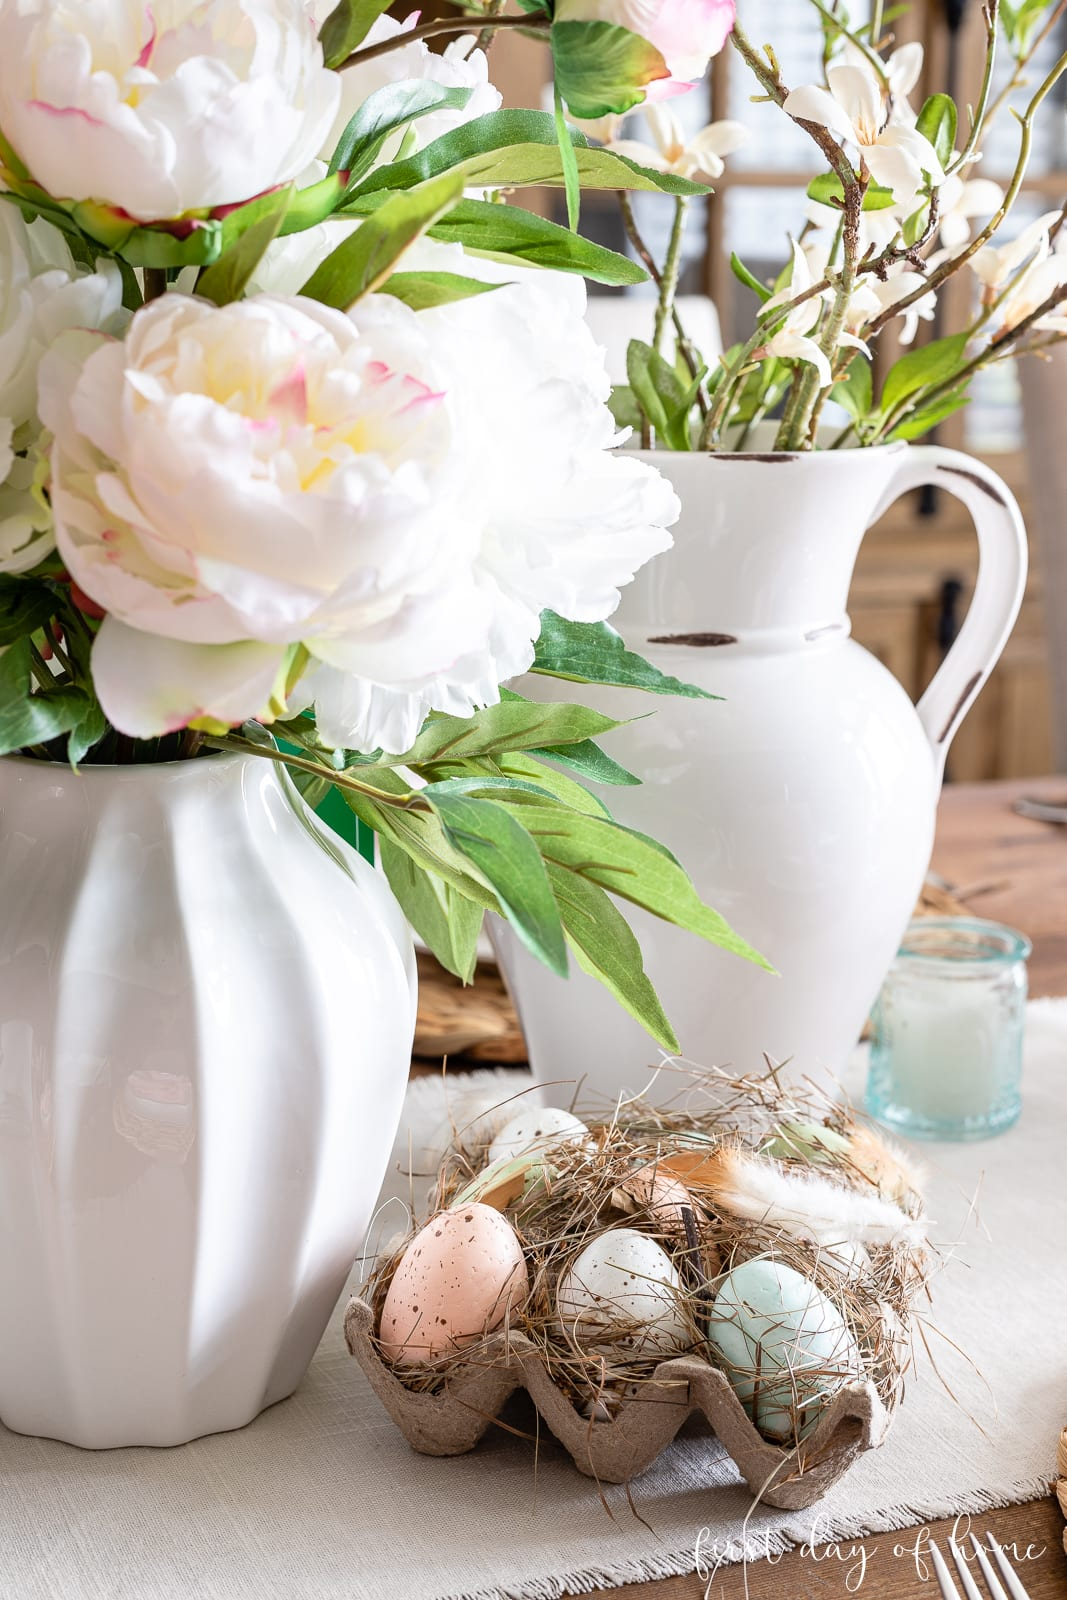 Spring table centerpiece with faux florals in vases and small half dozen eggs in a crate that resemble a nest